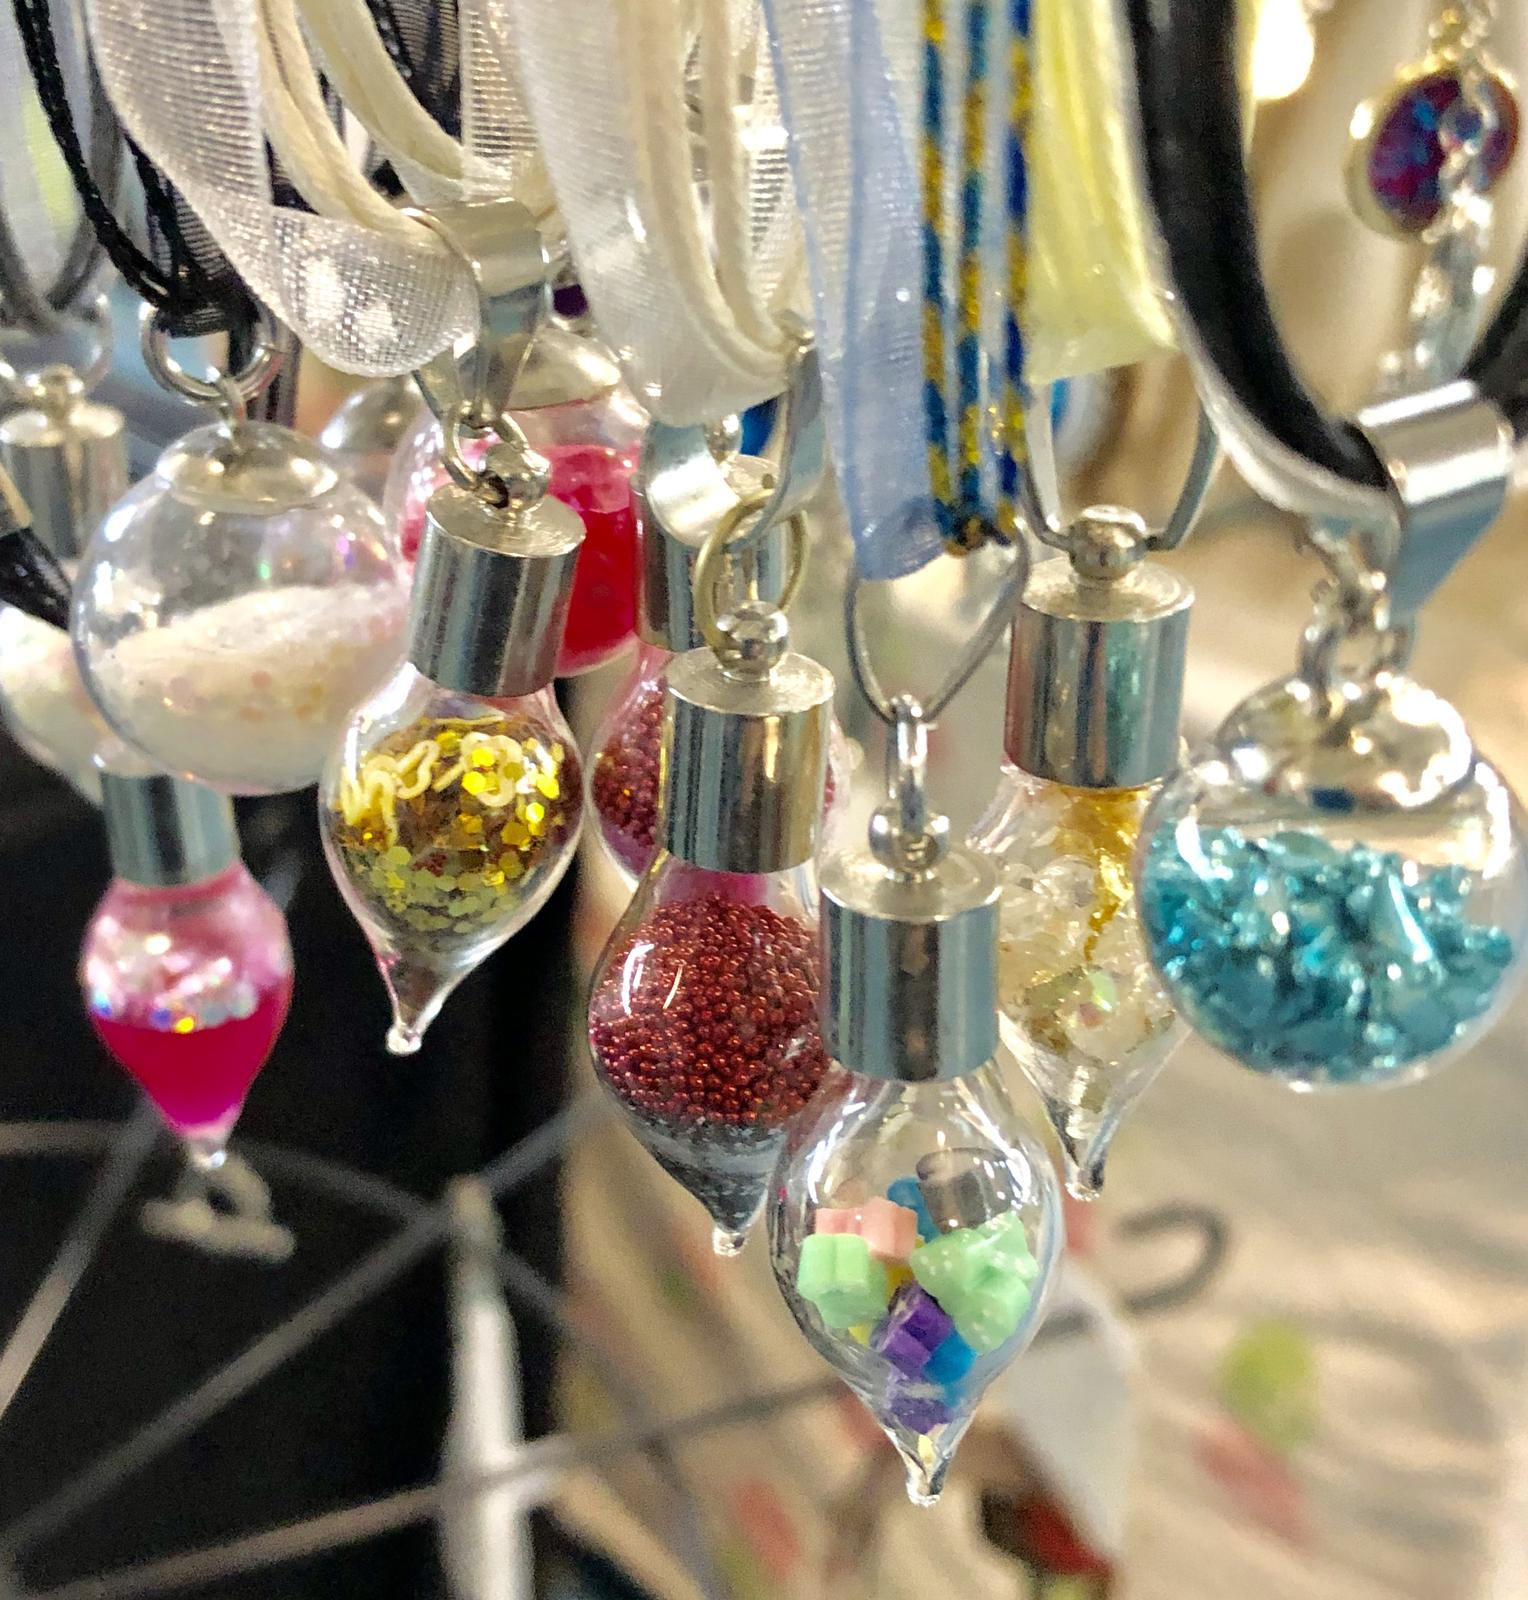 Some little magic bubble necklaces